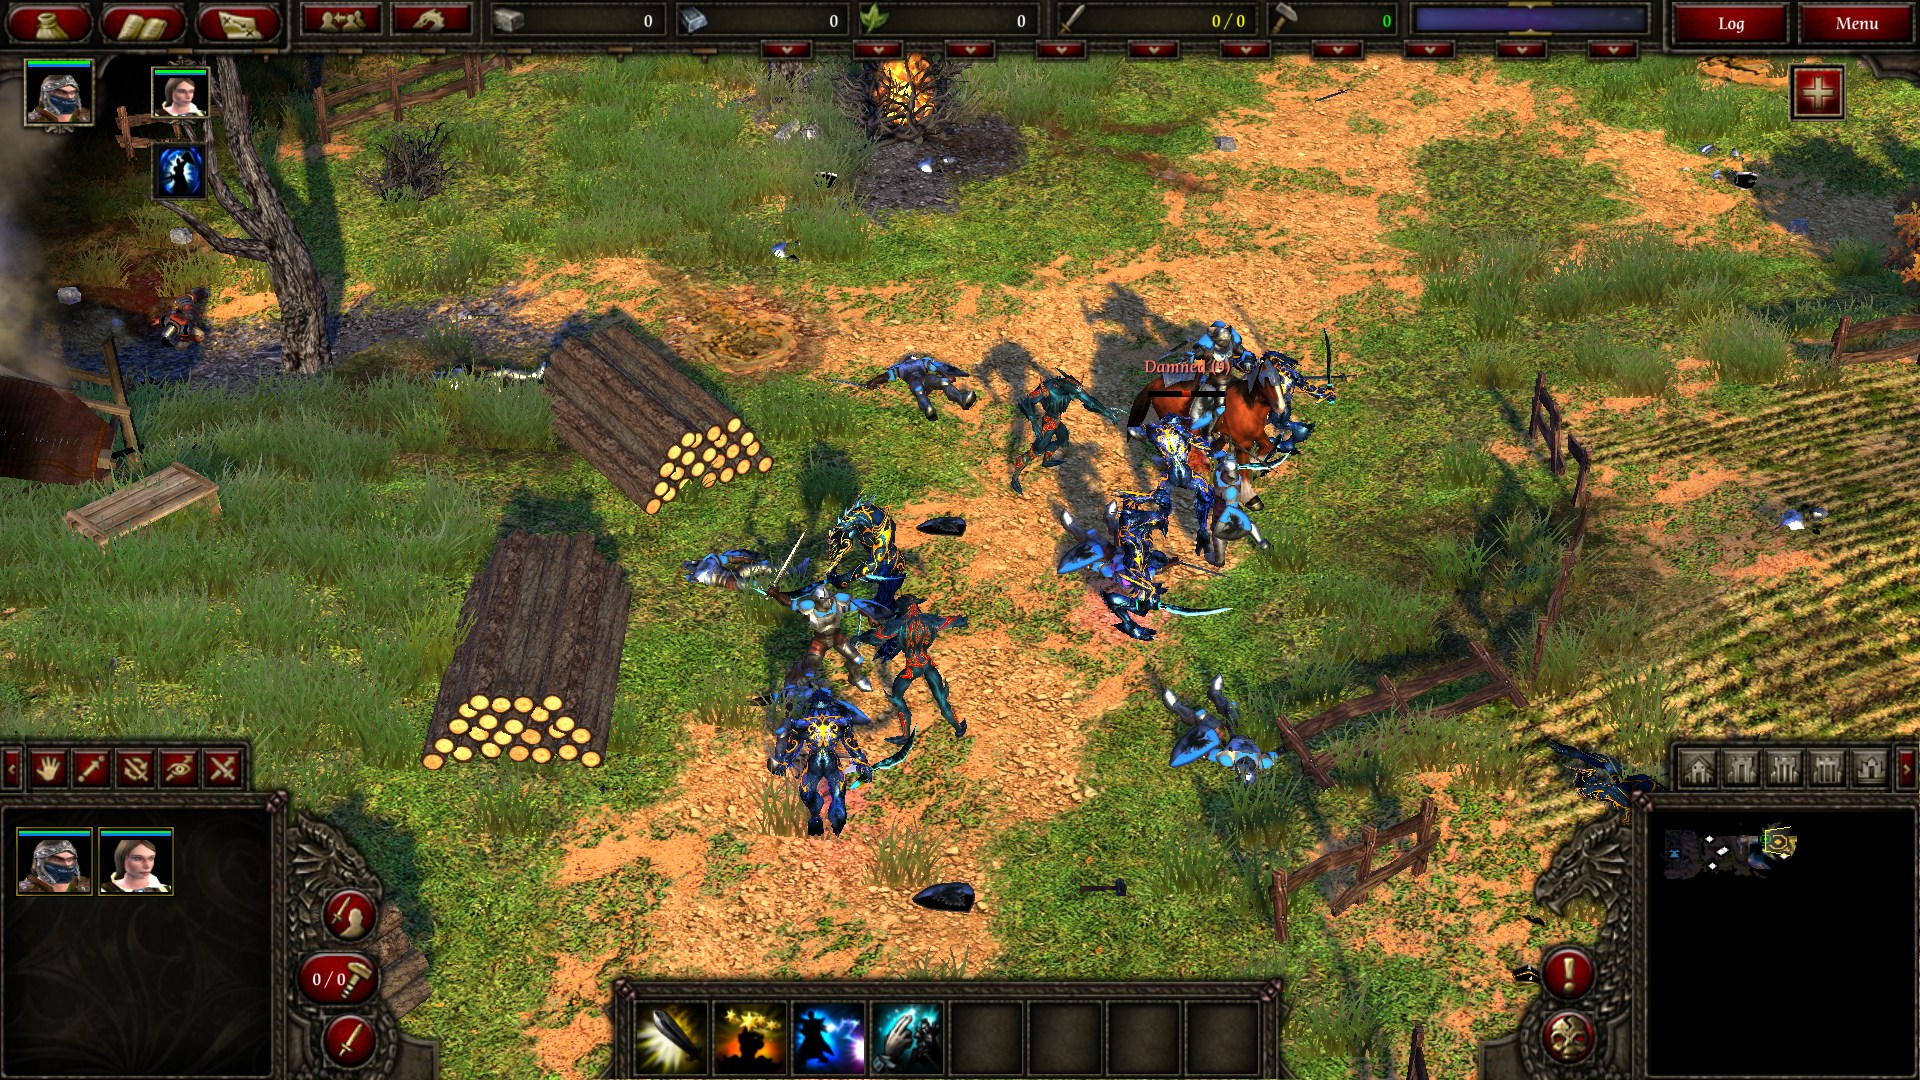 Spellforce 2 faith in destiny pc game review jupiters casino packages